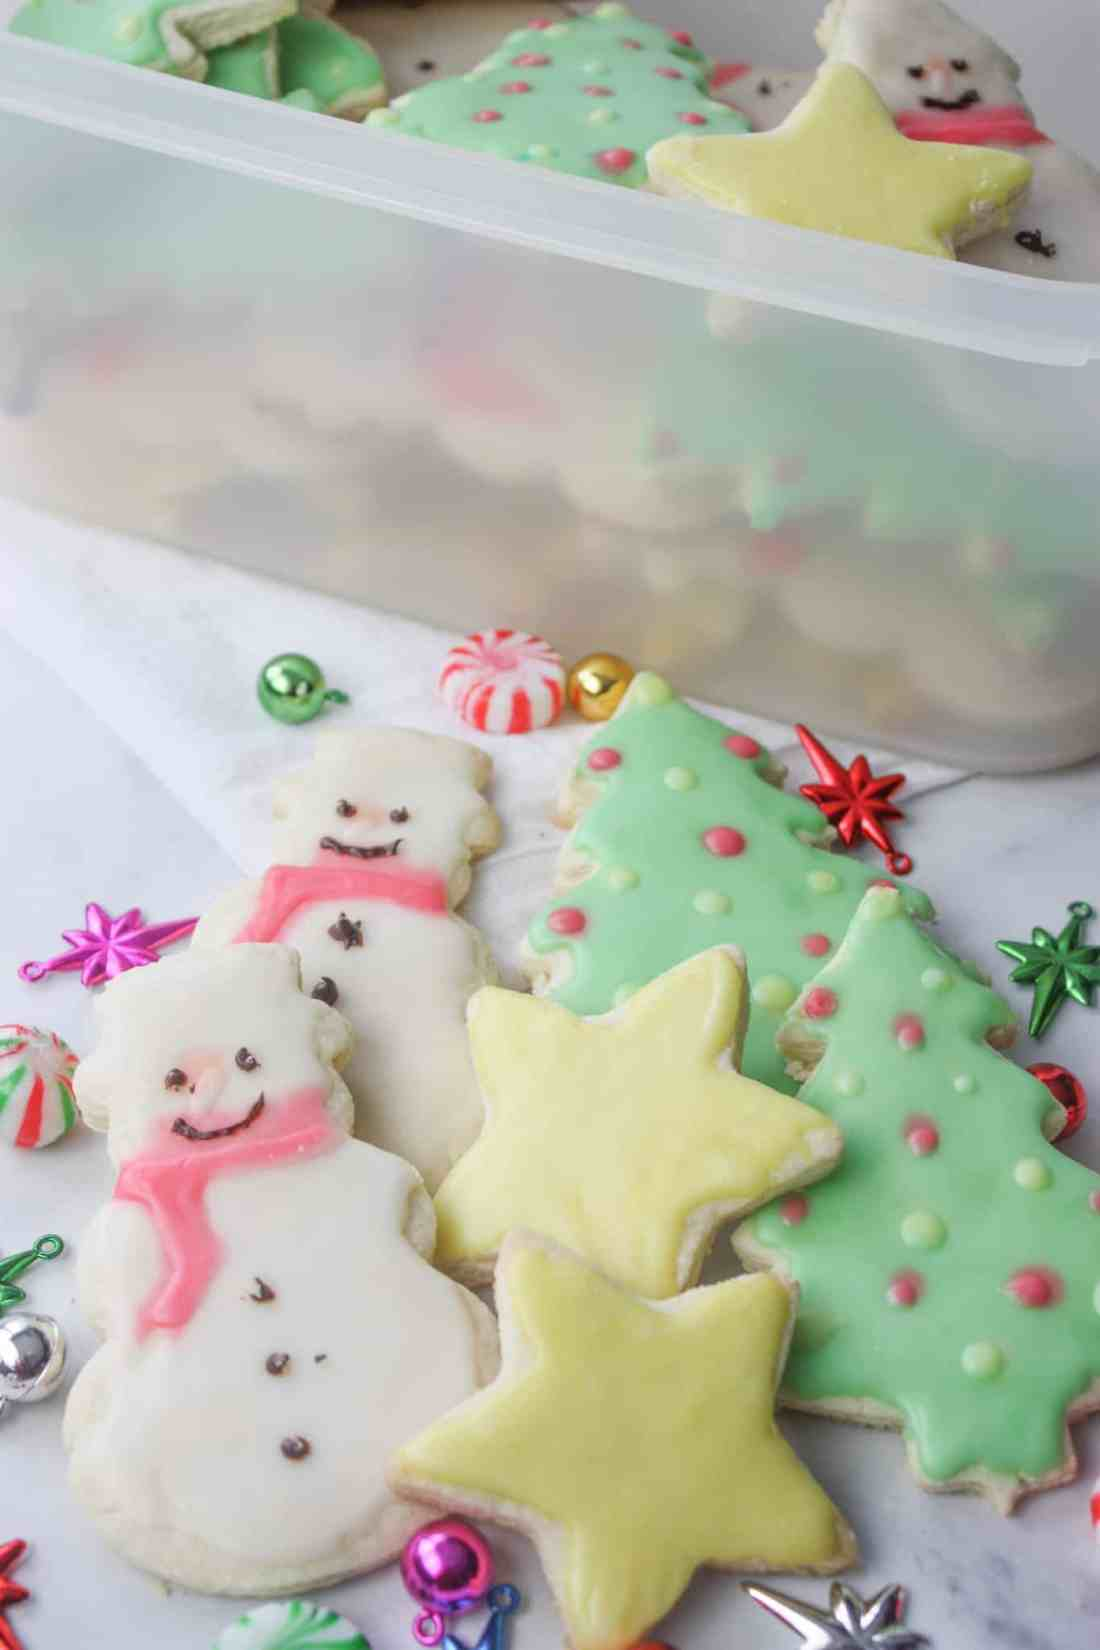 Here are the best Gluten Free Sugar Cookies I have ever made! They will be my new go to recipe, whether I decorate them for each holiday or leave them plain for dunking!